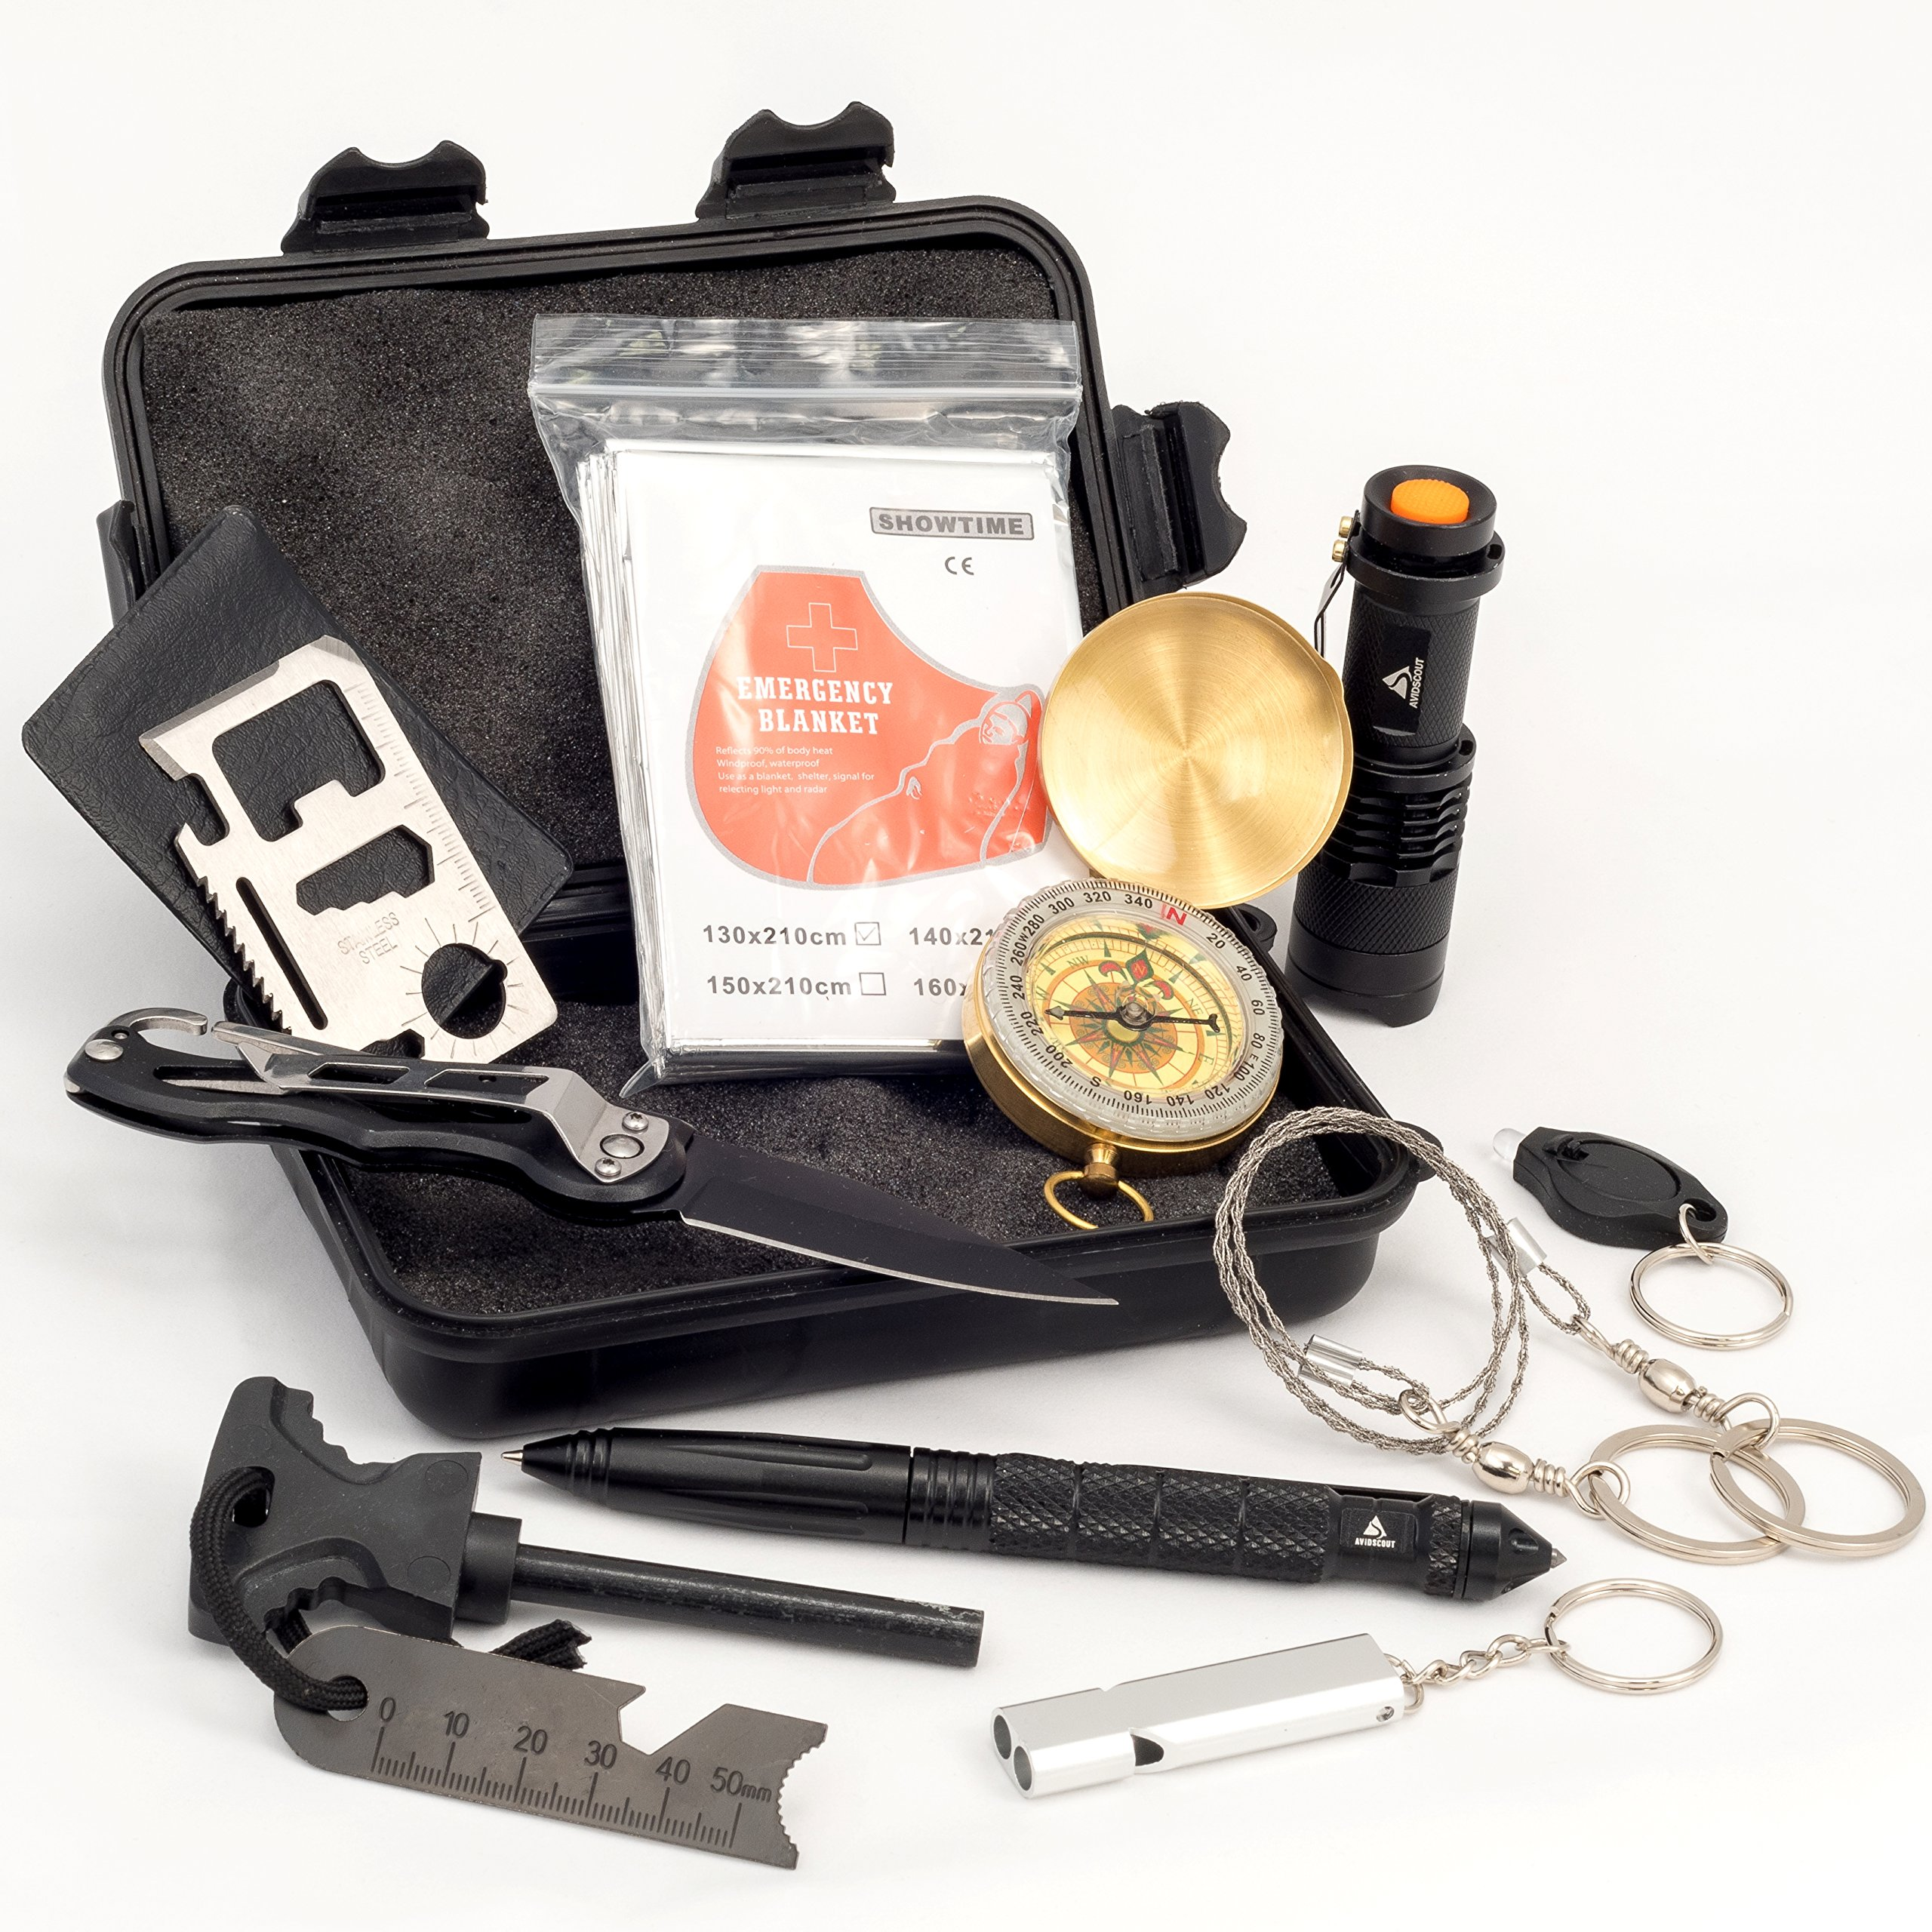 AvidScout 11-IN-1 EMERGENCY SURVIVAL KIT - Elite tactical military-style gear - Compact waterproof case set for men, women, and kids; for wilderness, hiking, camping, car, urban and EDC